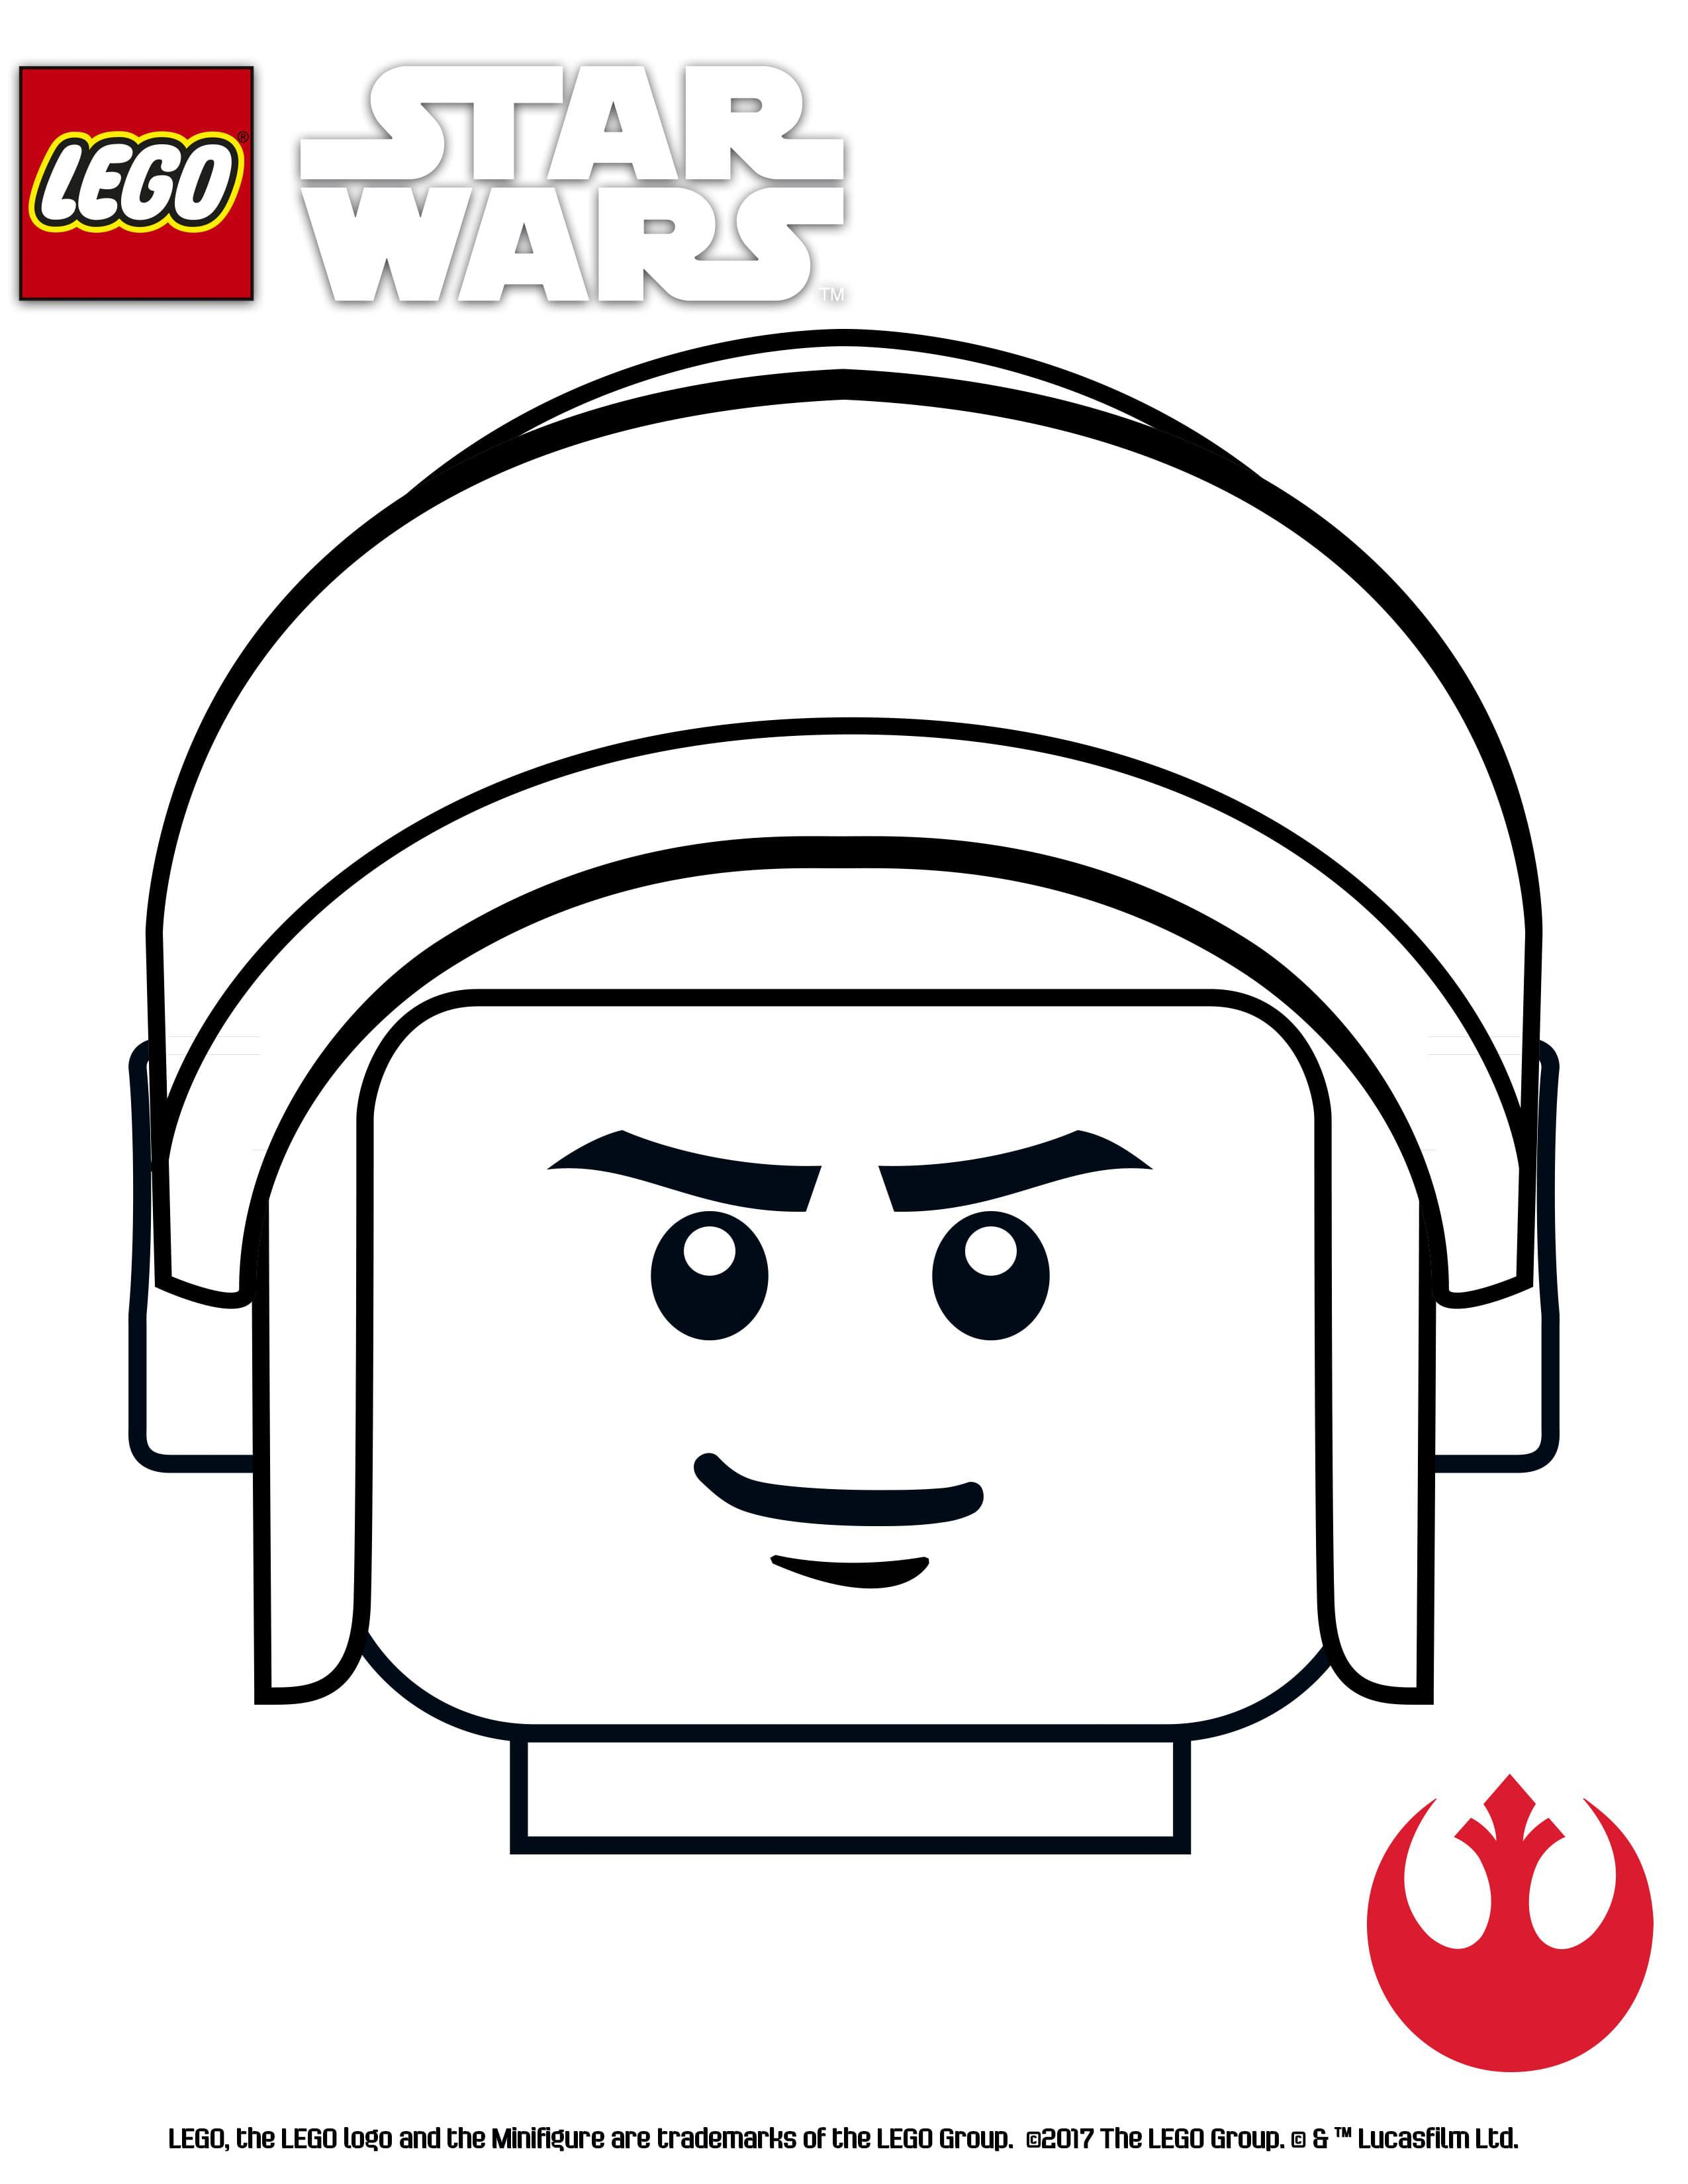 LEGO Star Wars coloring page - Red Suadron | Star Wars | Pinterest ...